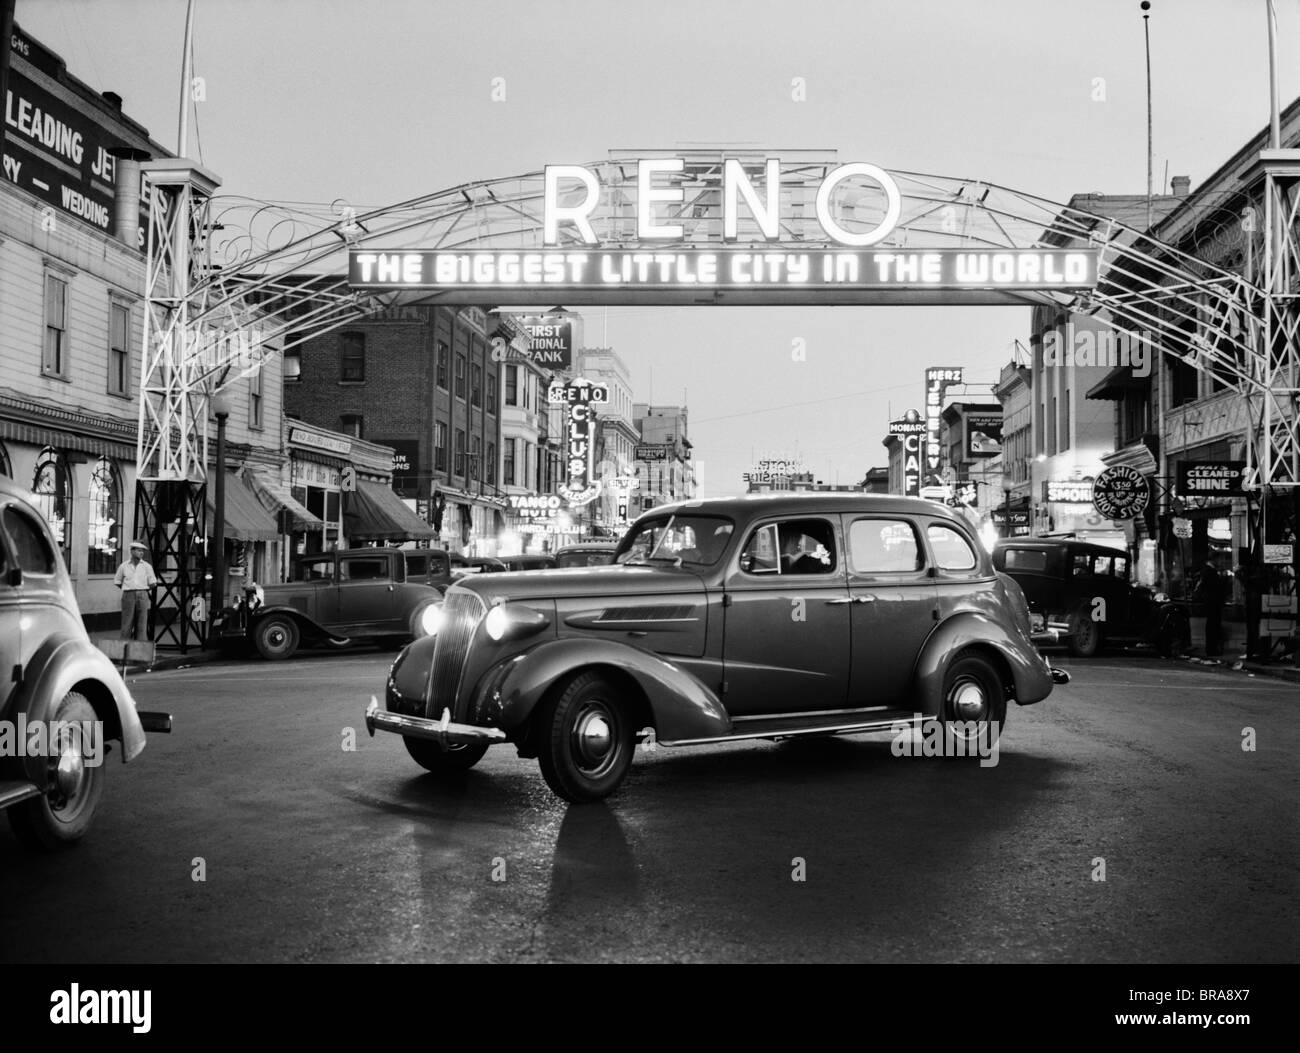 1930s NIGHT OF ARCH OVER MAIN STREET RENO NEVADA NEON SIGN THE BIGGEST LITTLE CITY IN THE WORLD - Stock Image